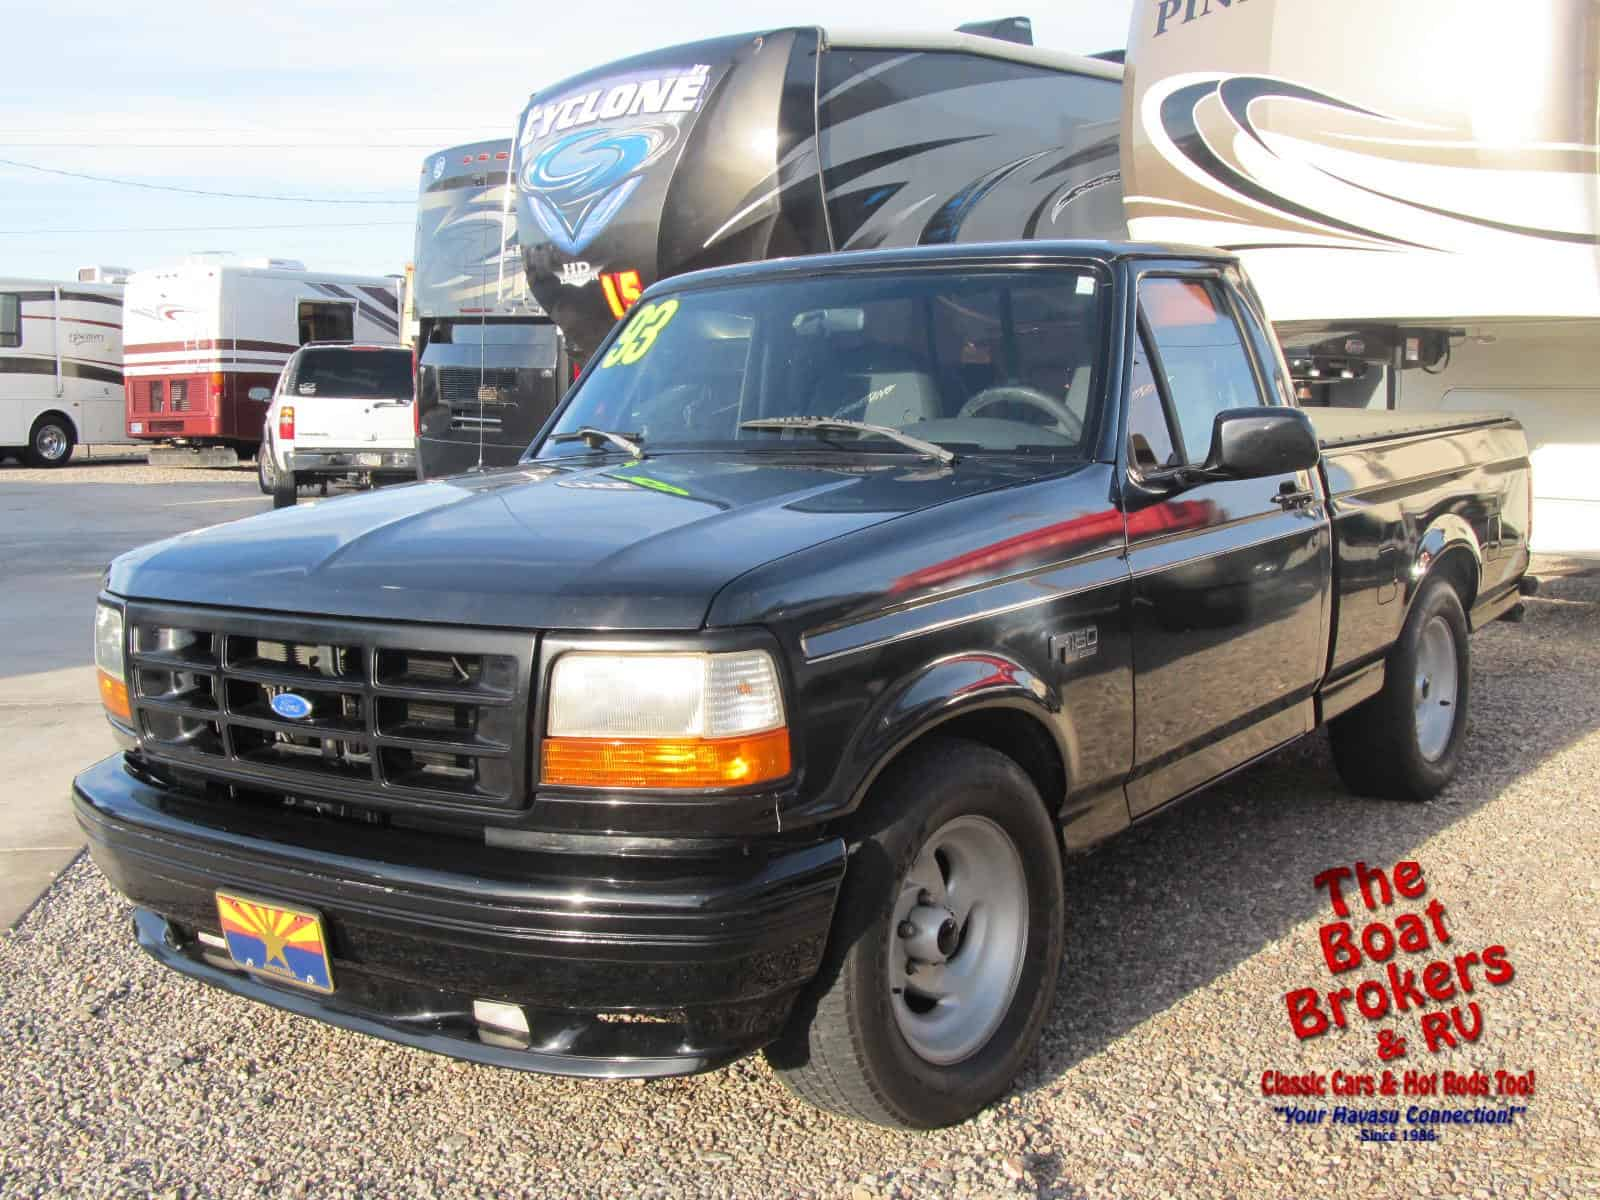 1993 ford lightning f150 xlt truck the boat brokers rv lake havasu city arizona new. Black Bedroom Furniture Sets. Home Design Ideas